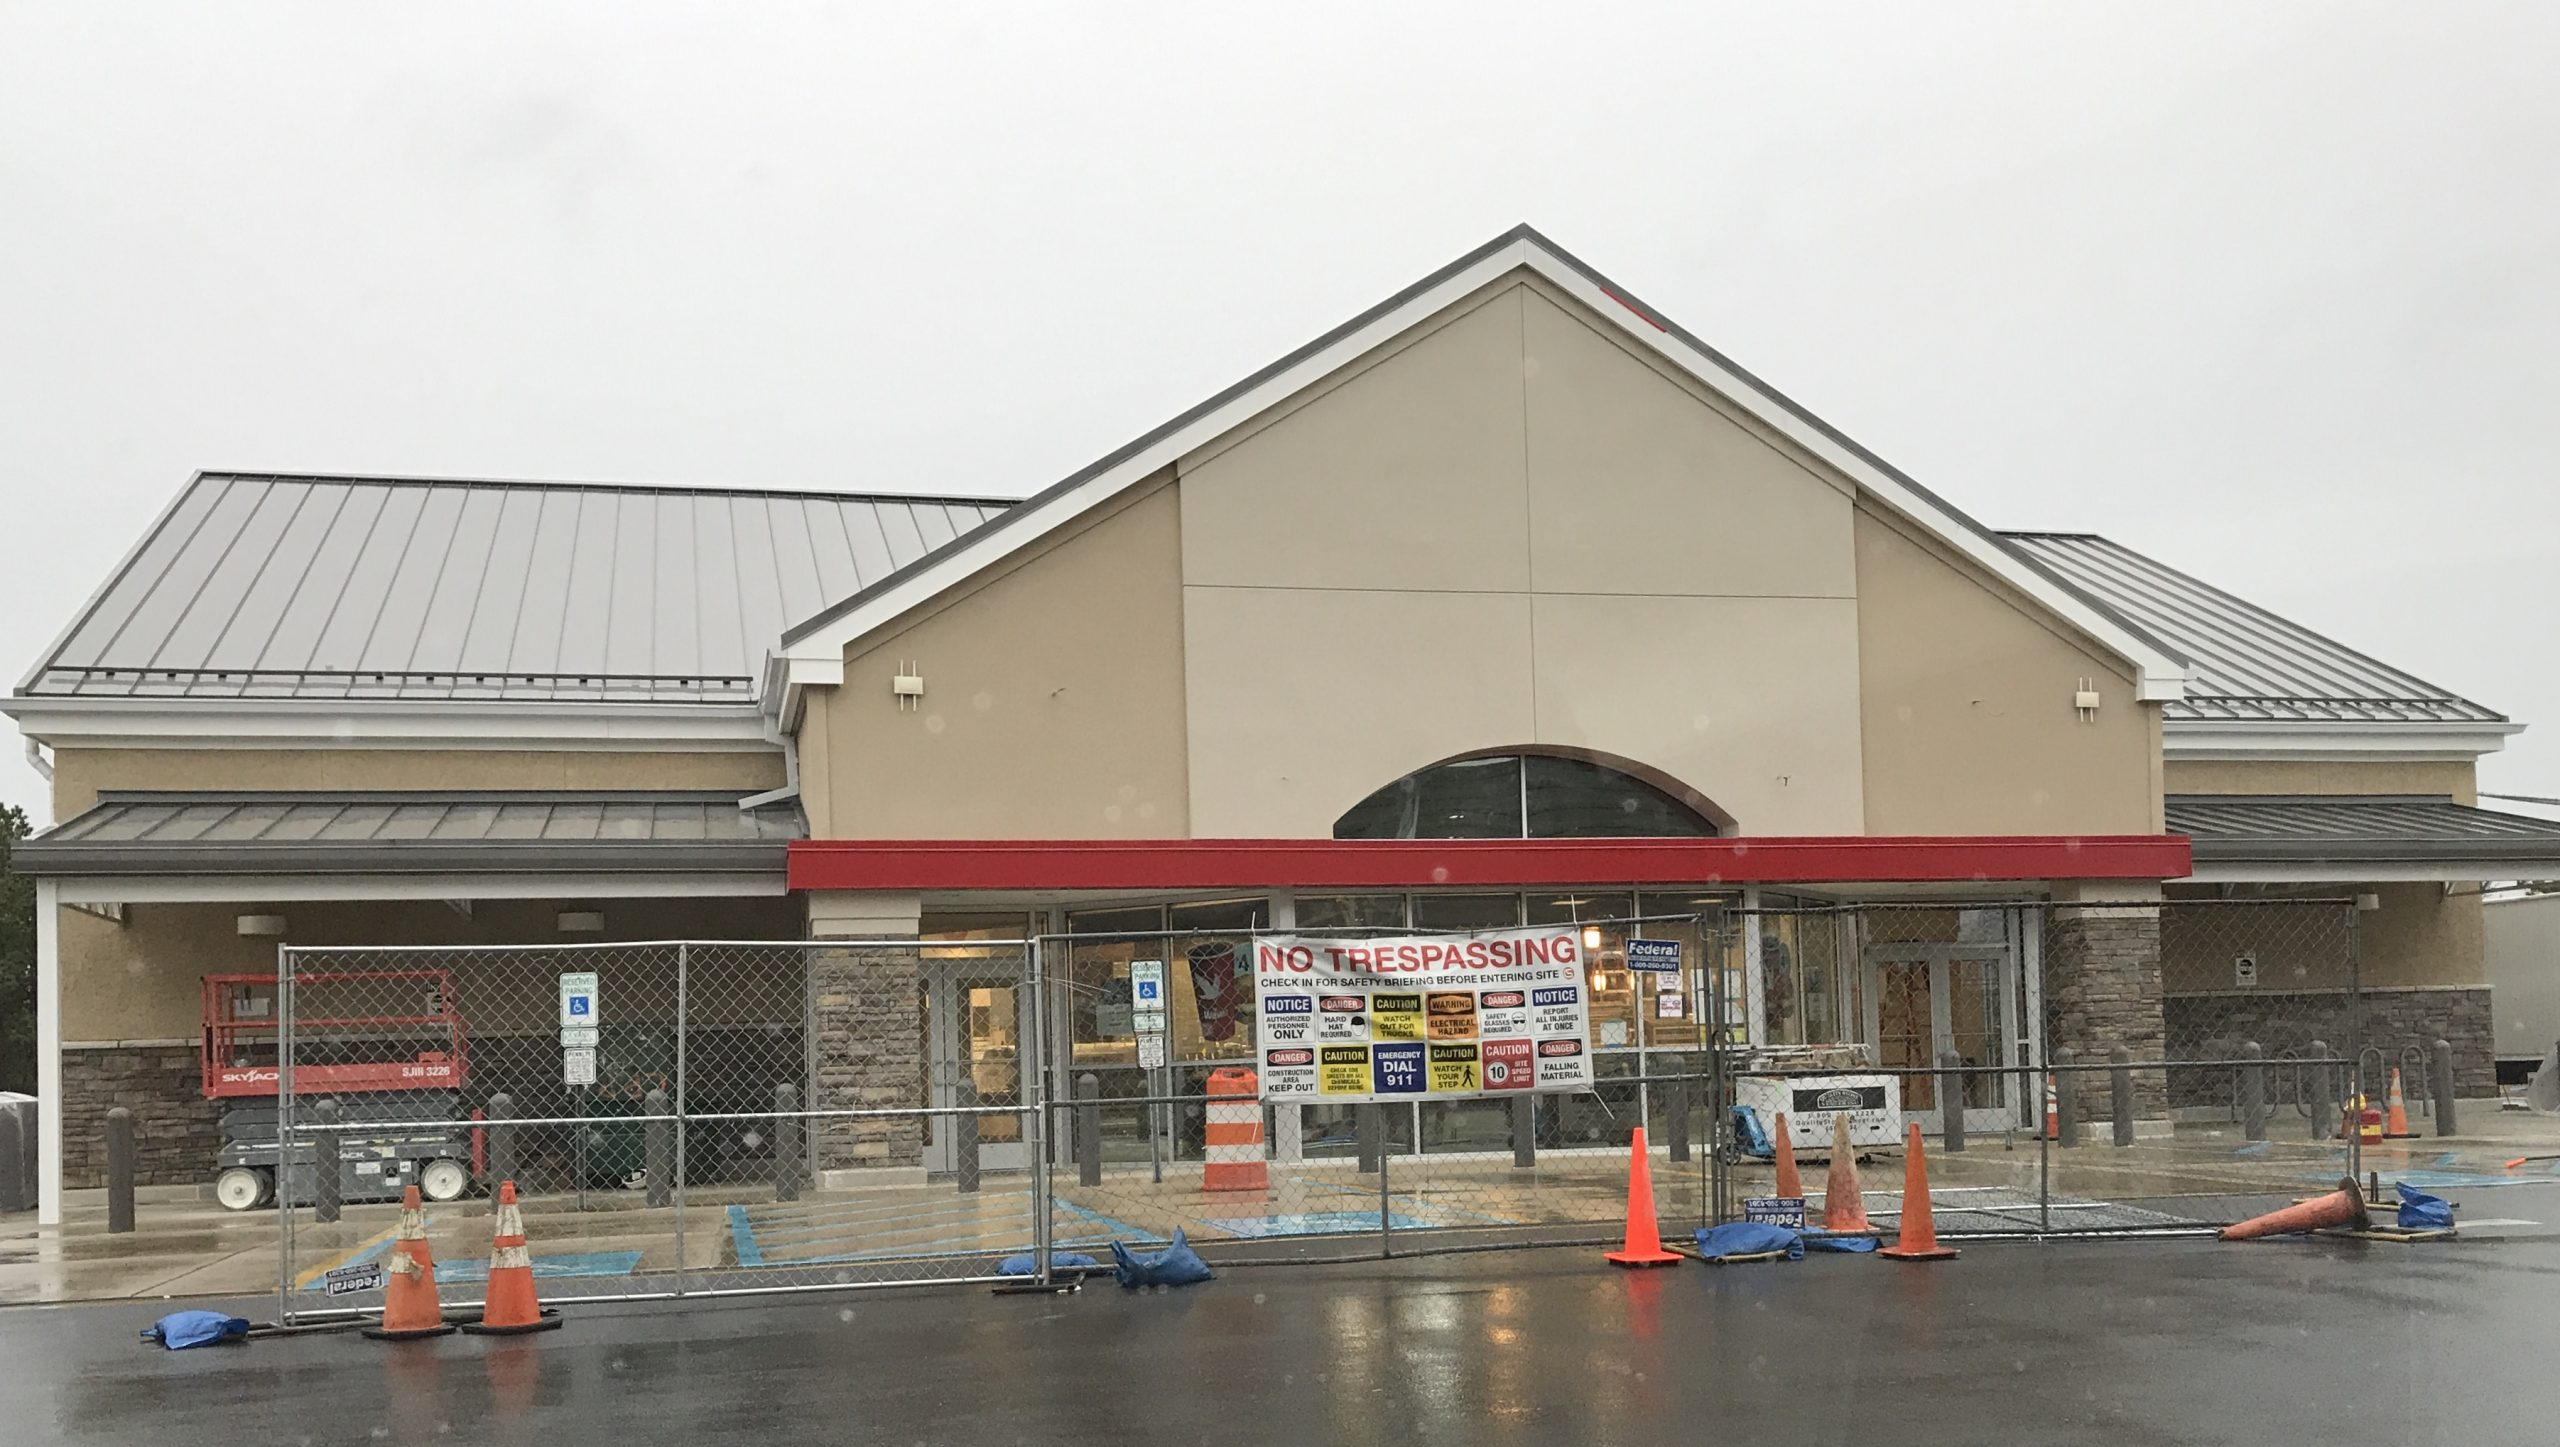 The Brick Boulevard Wawa store under construction, Feb. 10, 2020. (Photo: Daniel Nee)